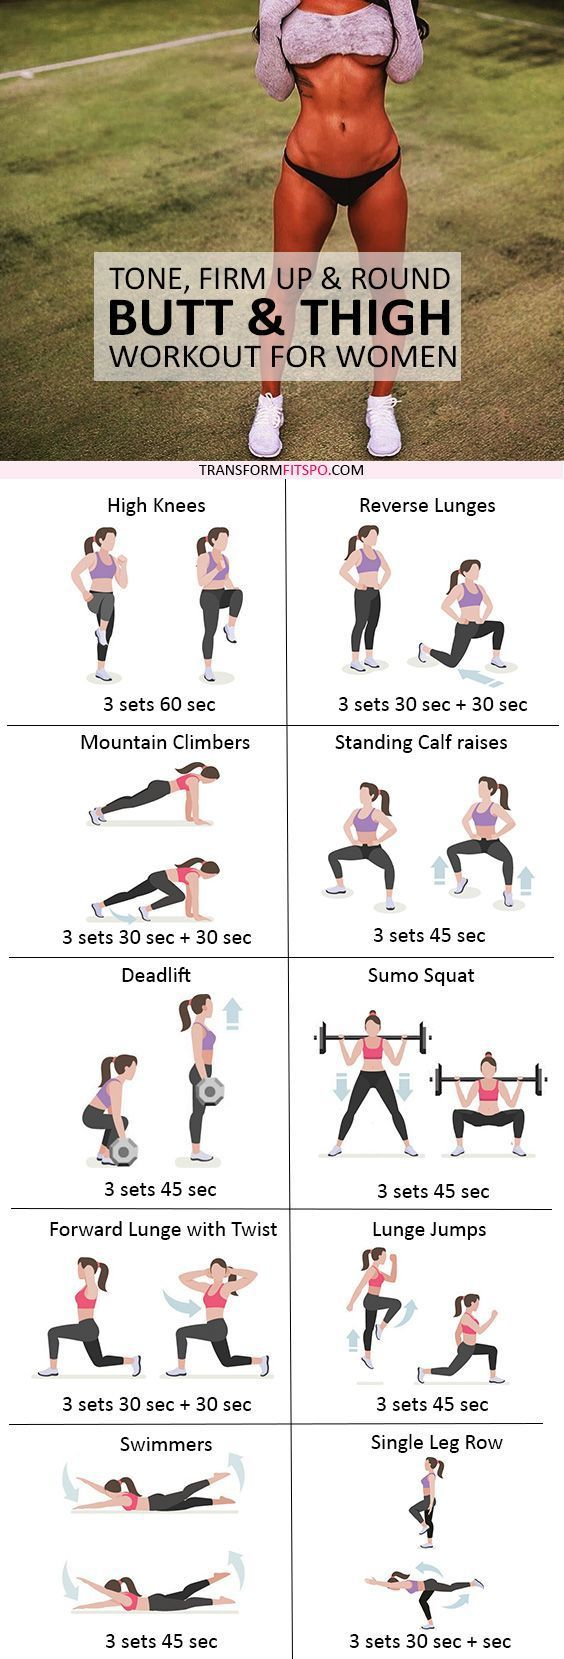 Gym & Entraînement : Repin and share if this workout helped you get sexy thighs and a big bum! Read t